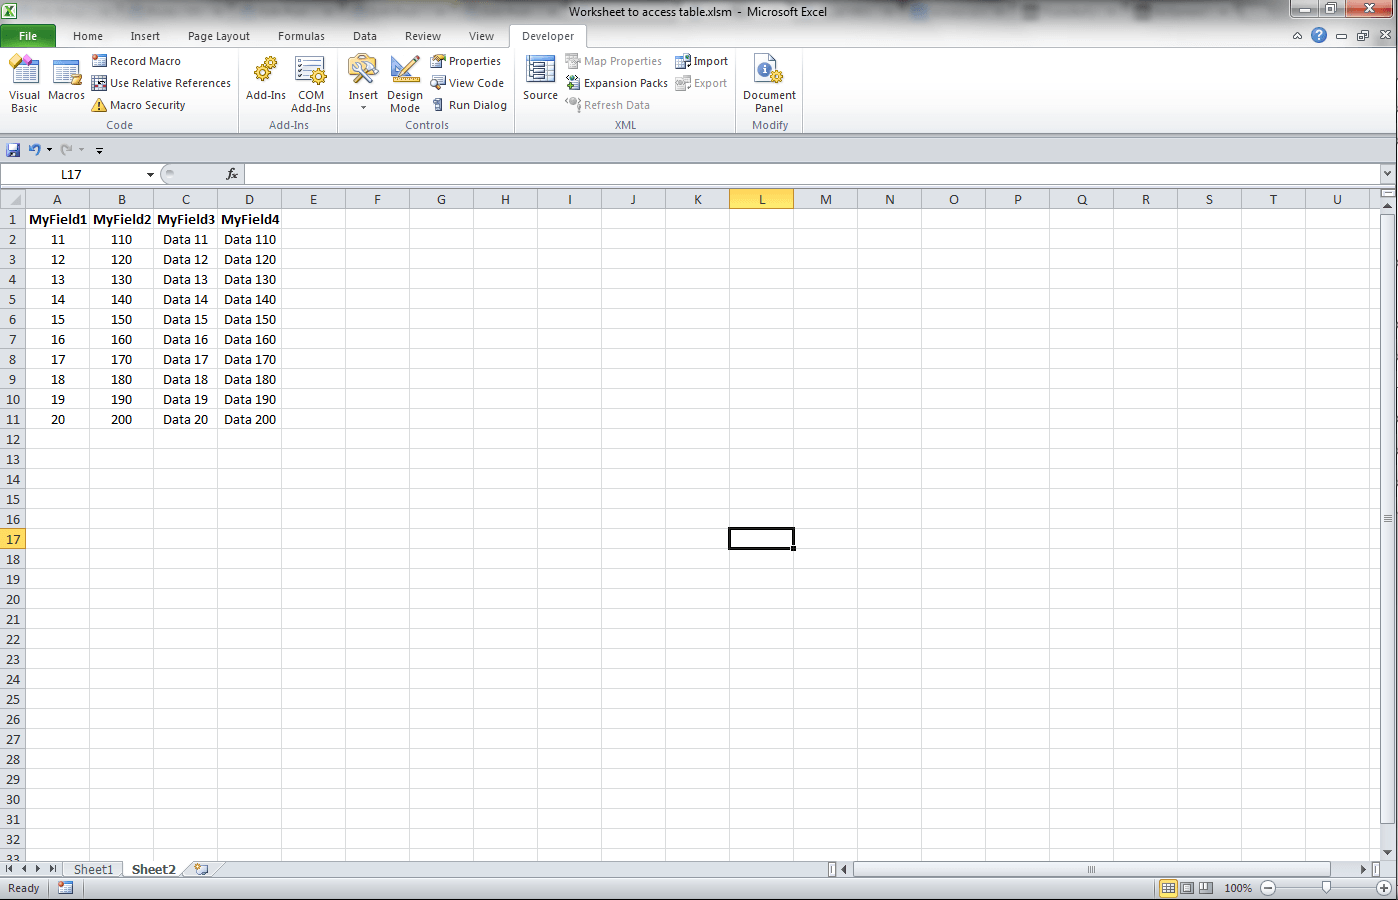 Access VBA, Import Excel Worksheet to Existing Table - VBA and VB